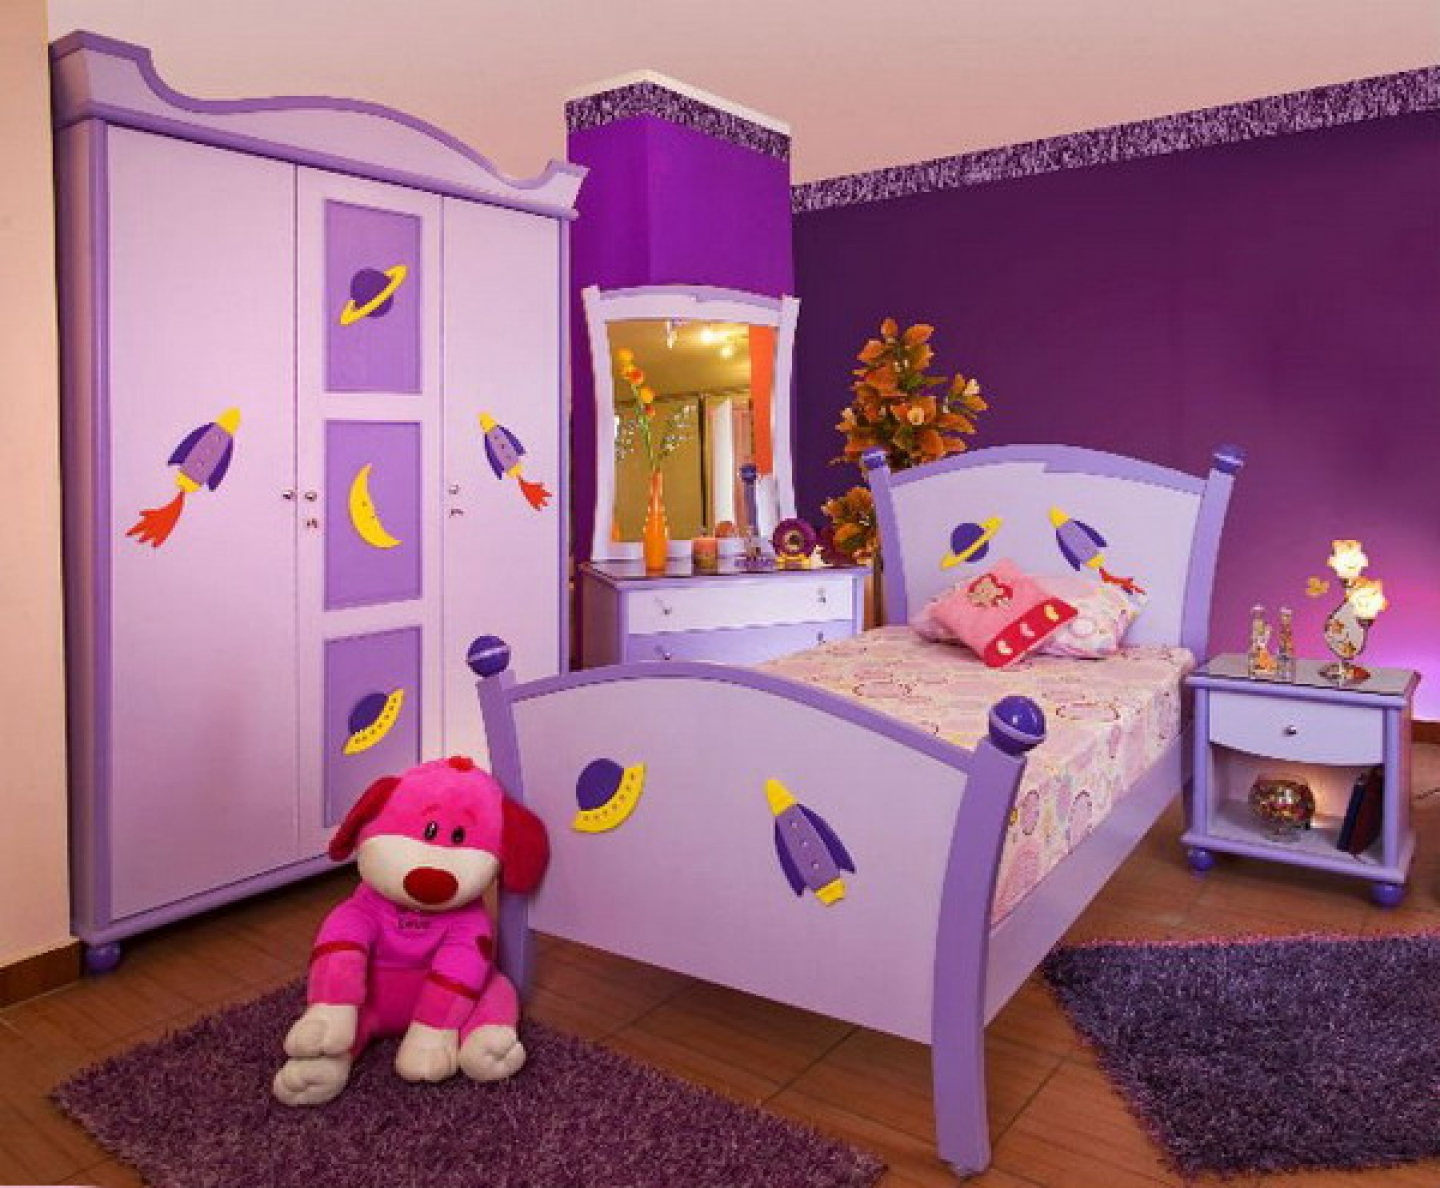 Bedrooms for kids 2017 - Children bedrooms ...